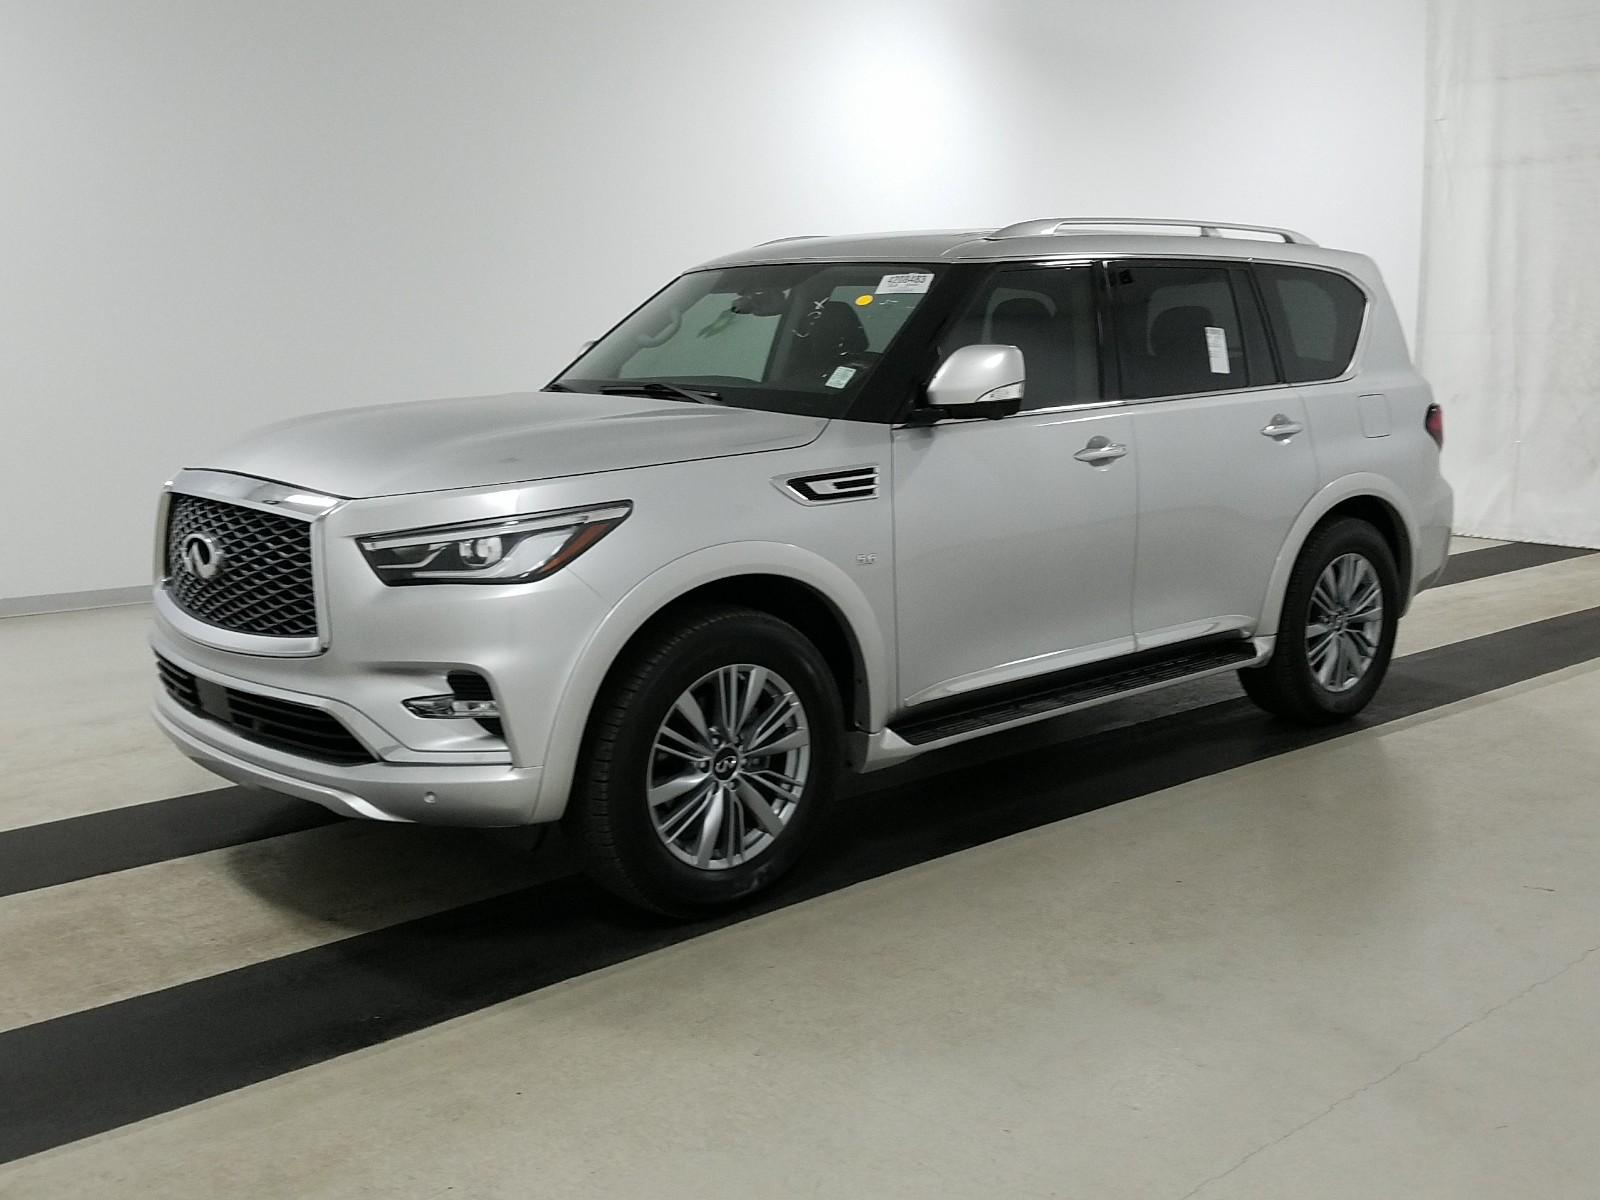 Qx80 For Sale >> 2018 Infiniti Qx80 For Sale